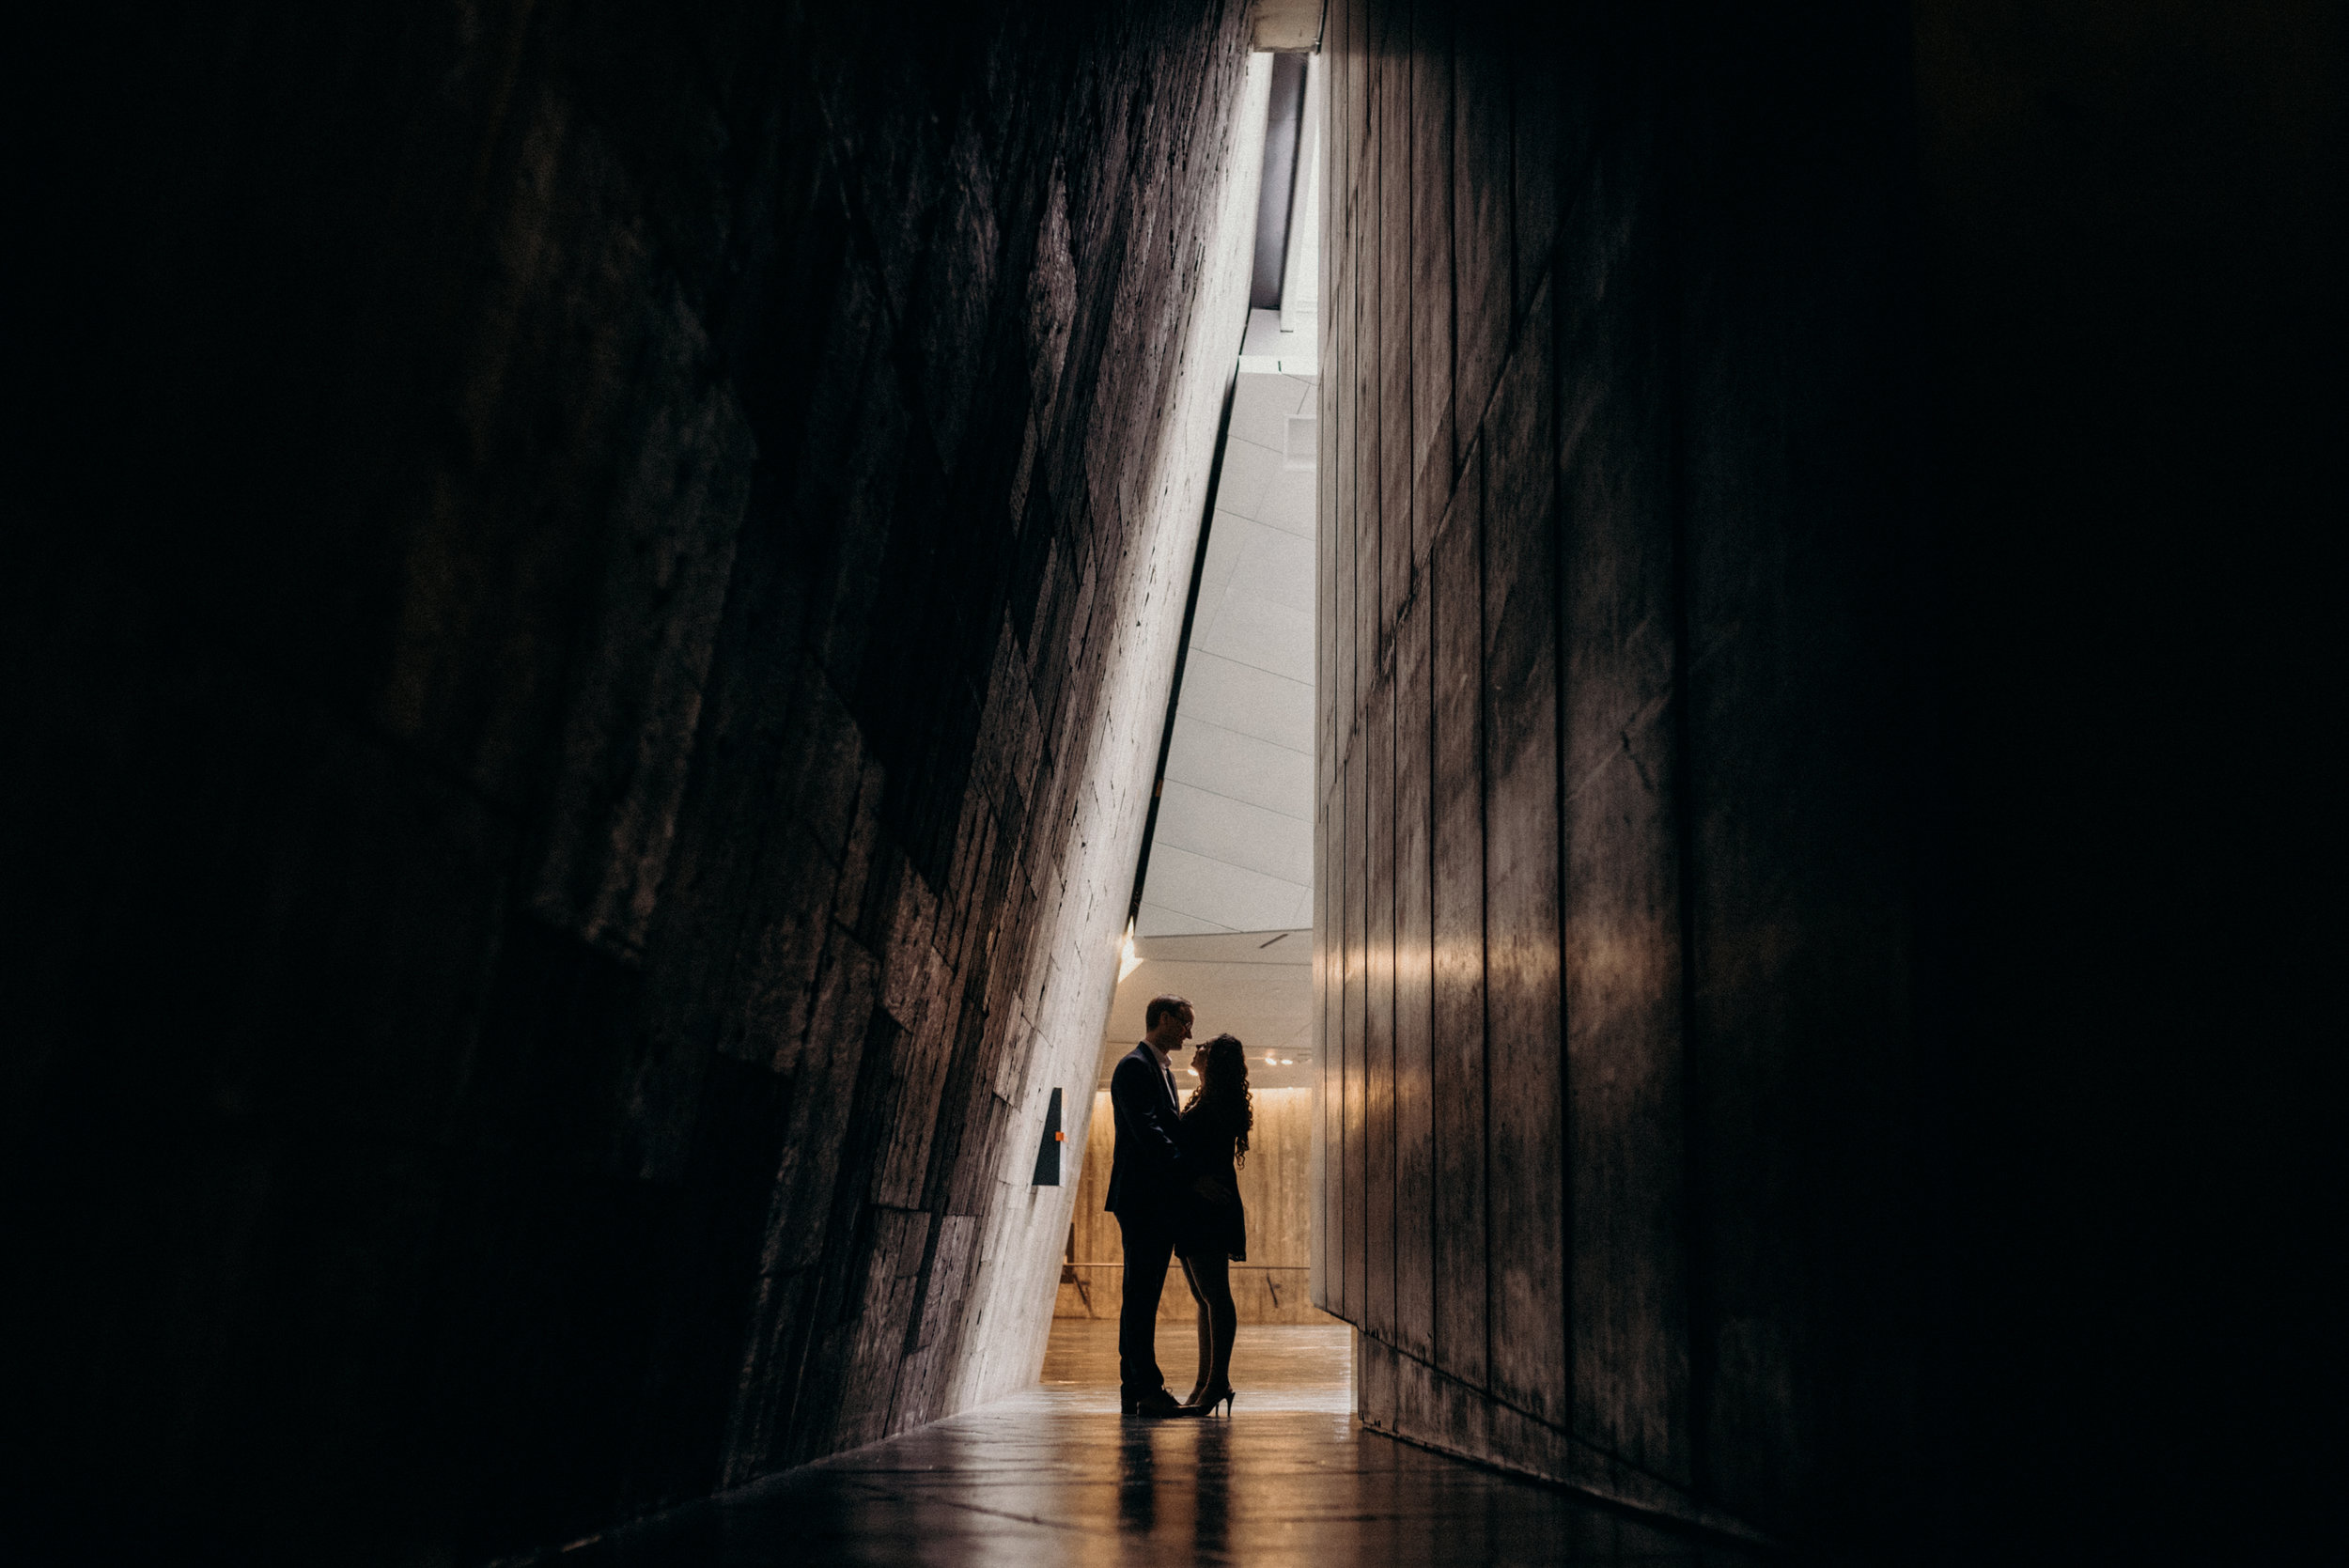 War Museum Engagement Picture Mocha Tree Studios Ottawa Toronto Montreal Wedding and Engagement Photographer and Videographer Dark Moody Intimate Authentic Modern Romantic Cinematic Best Candid 1